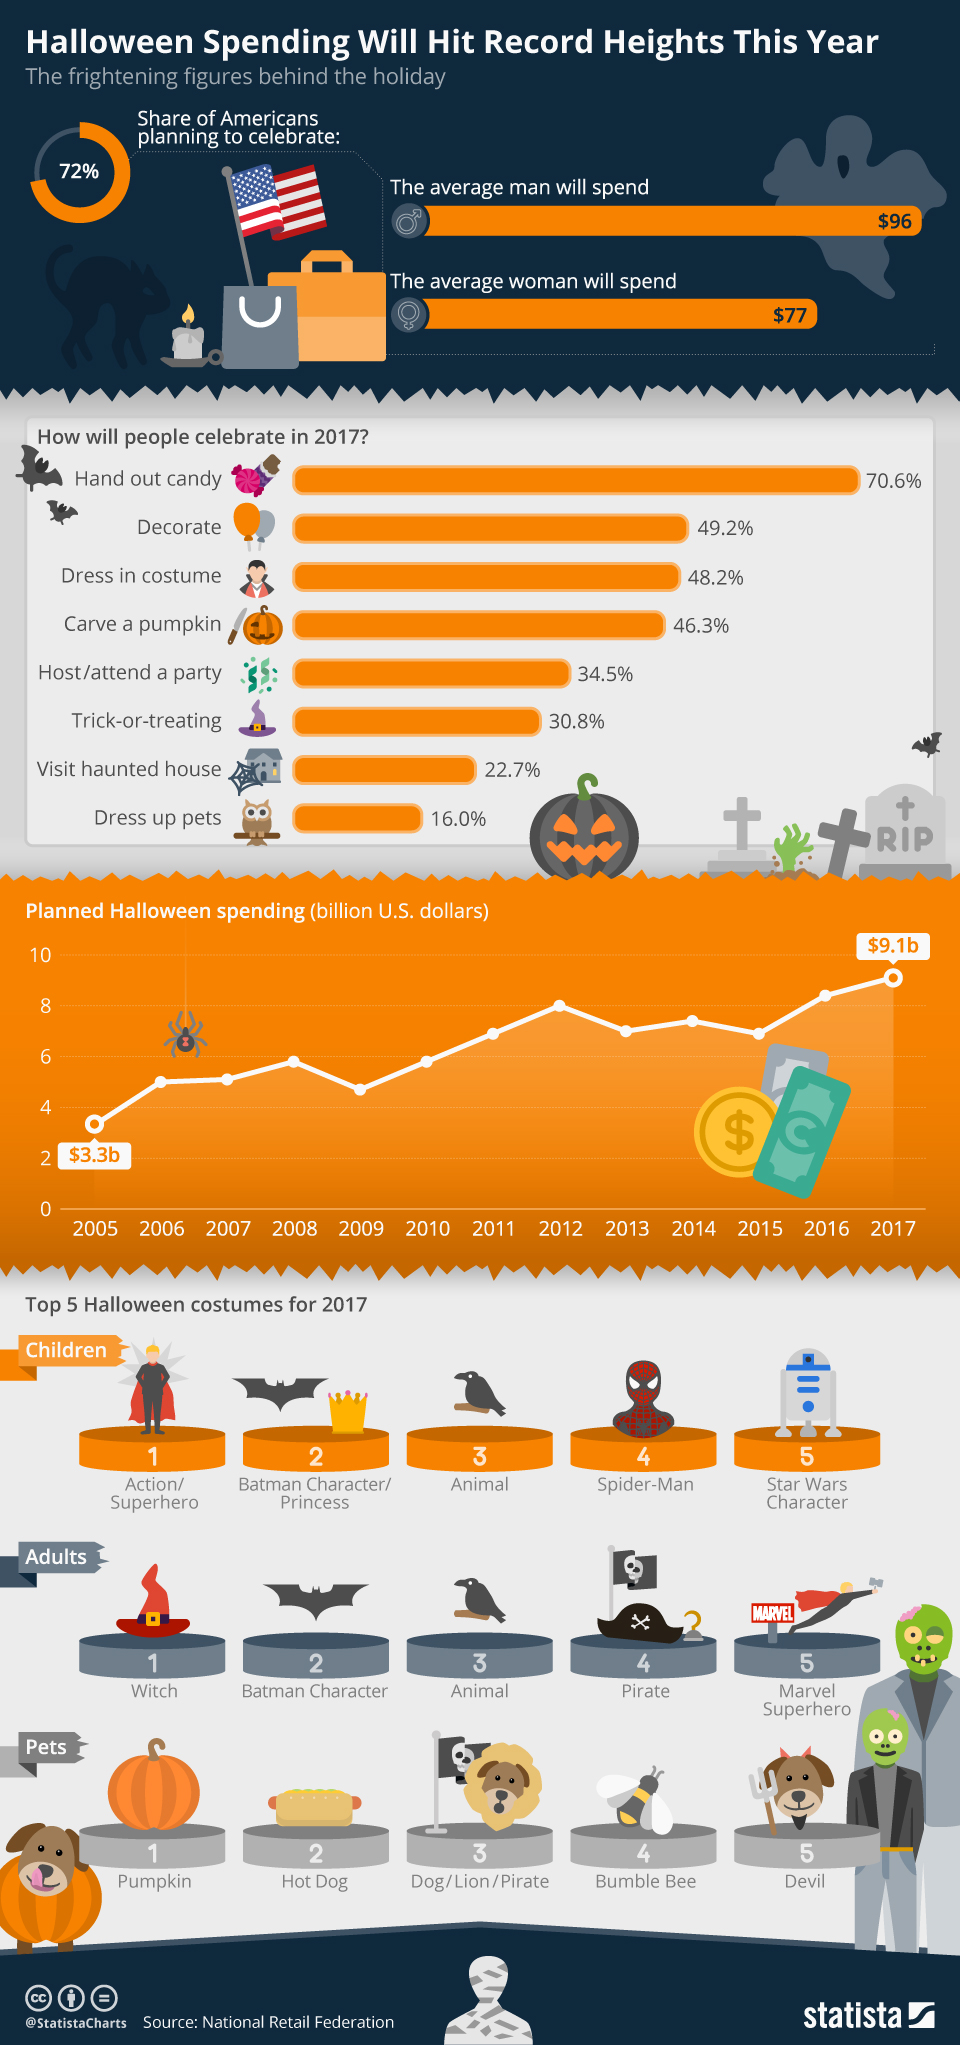 chartoftheday_11634_halloween_spending_will_hit_record_heights_this_year_n.jpg